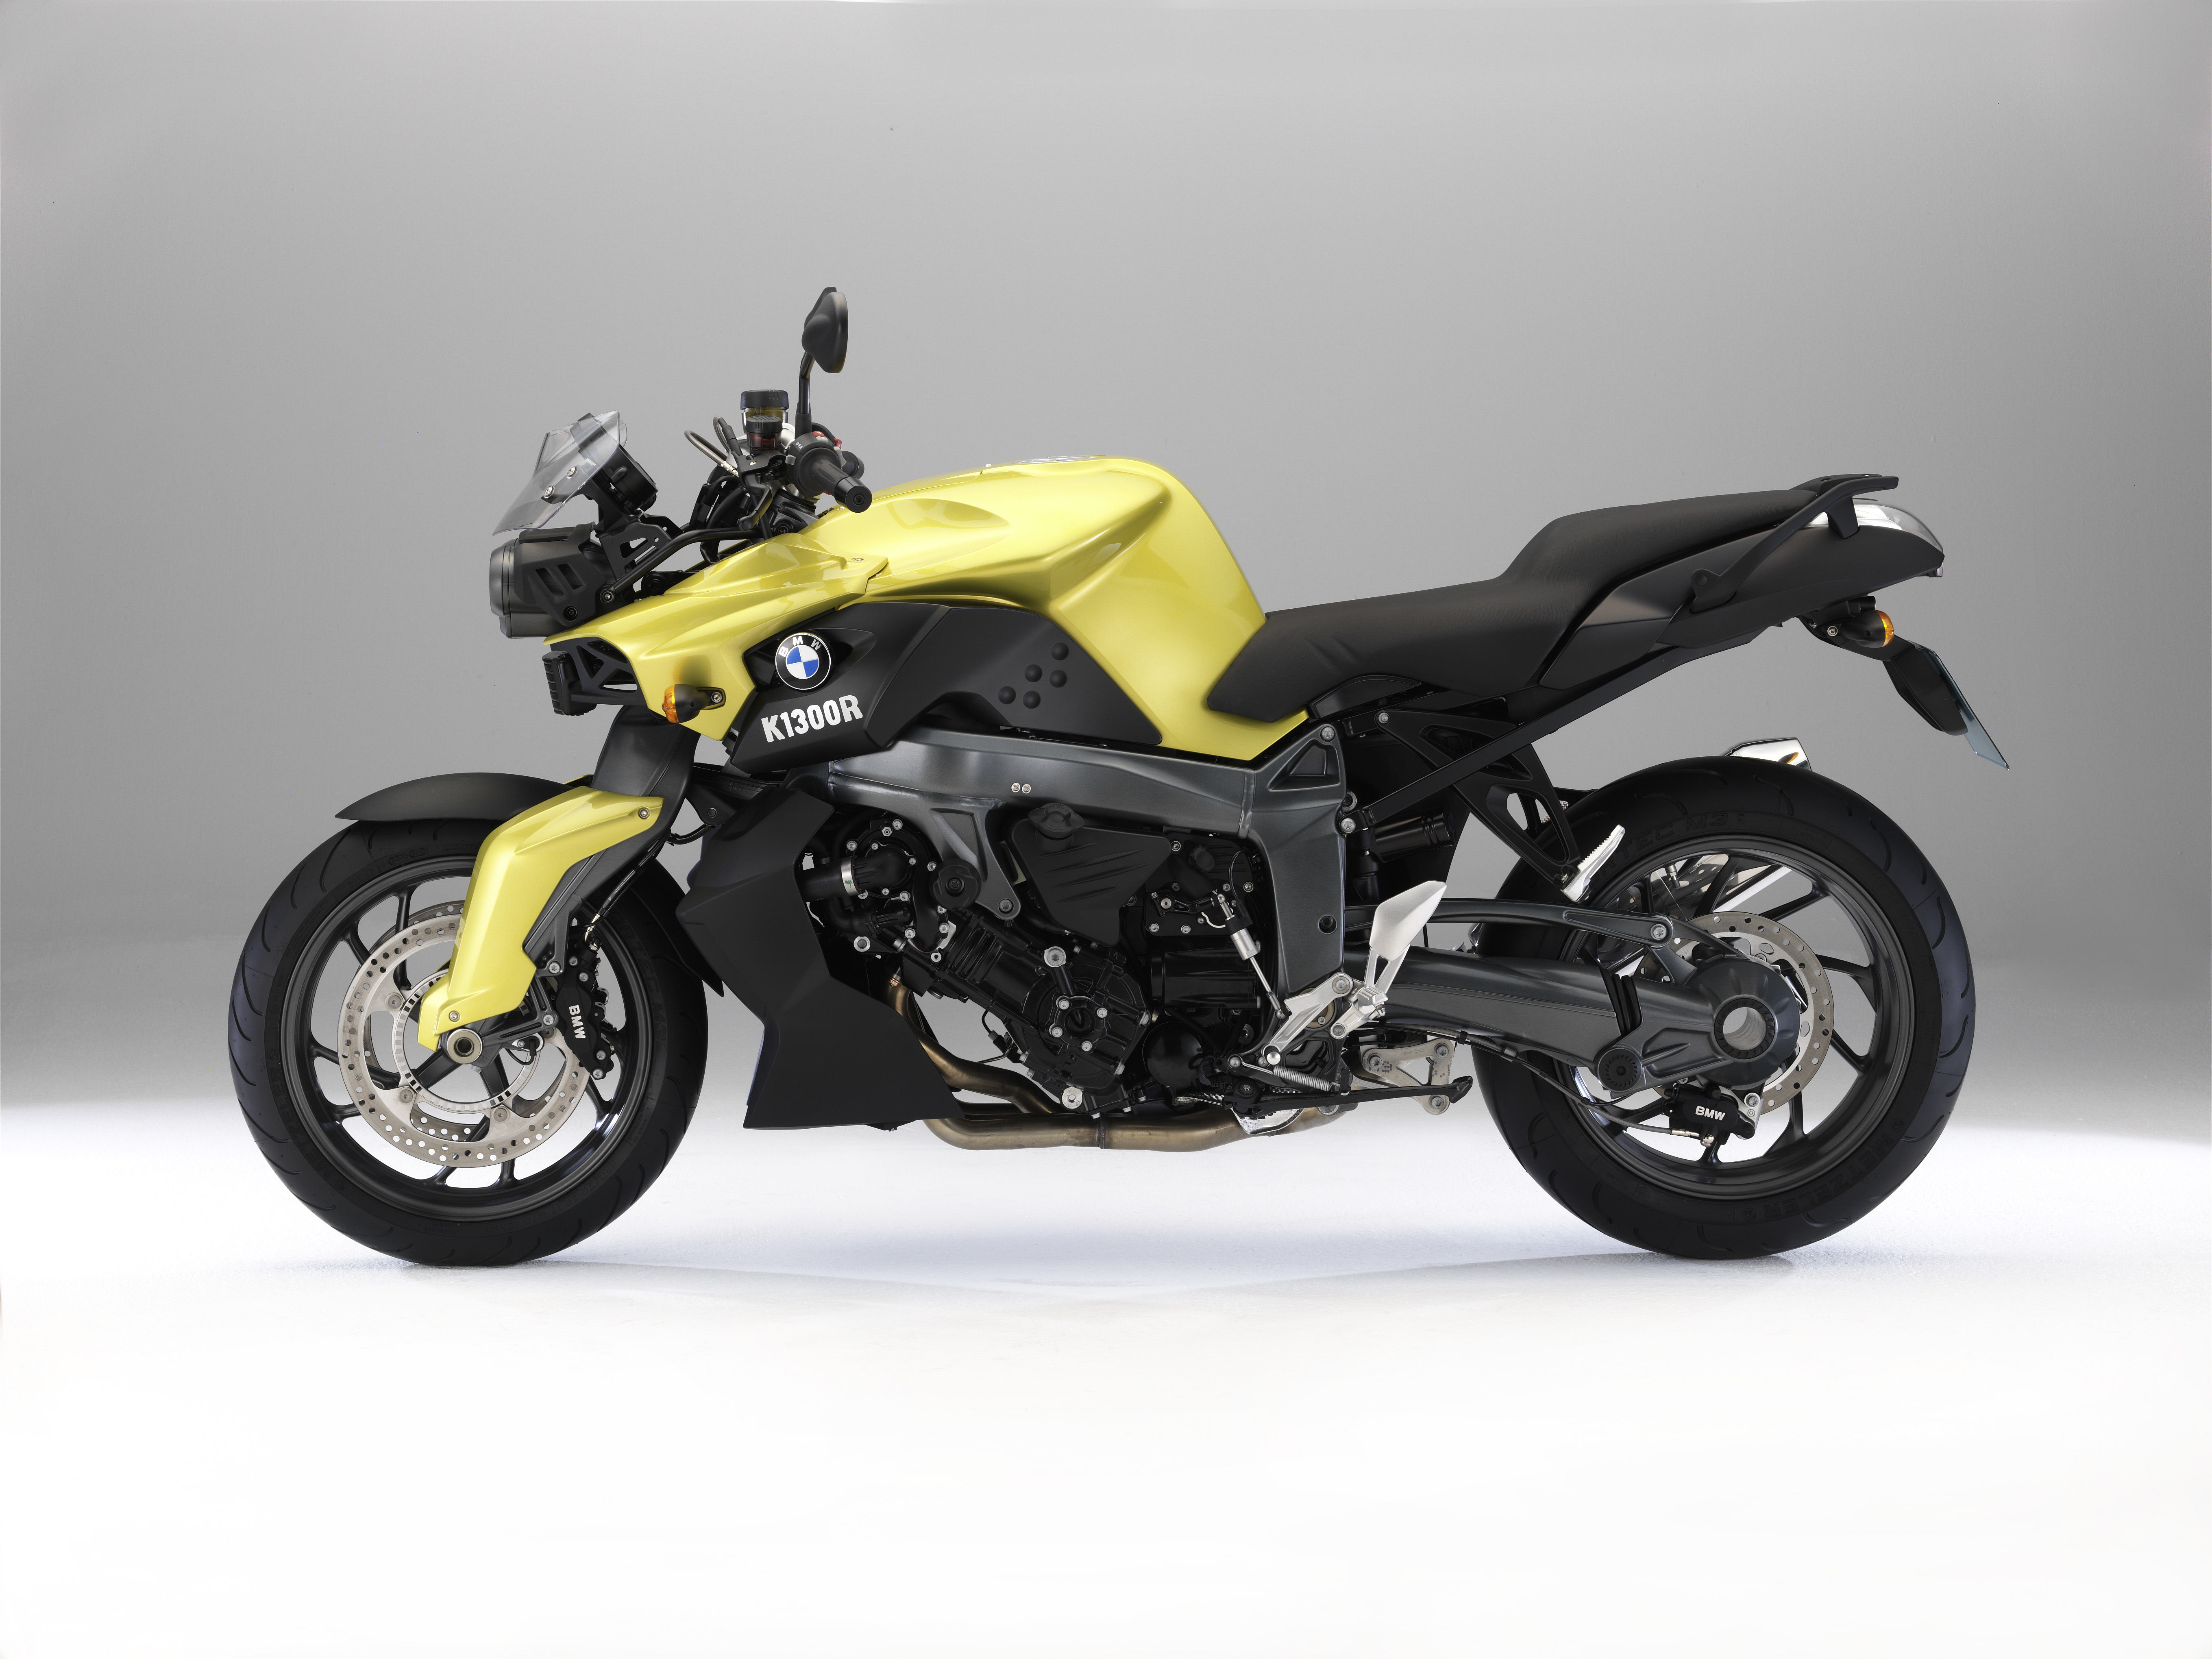 bmw introduce k1300r dynamic visordown. Black Bedroom Furniture Sets. Home Design Ideas